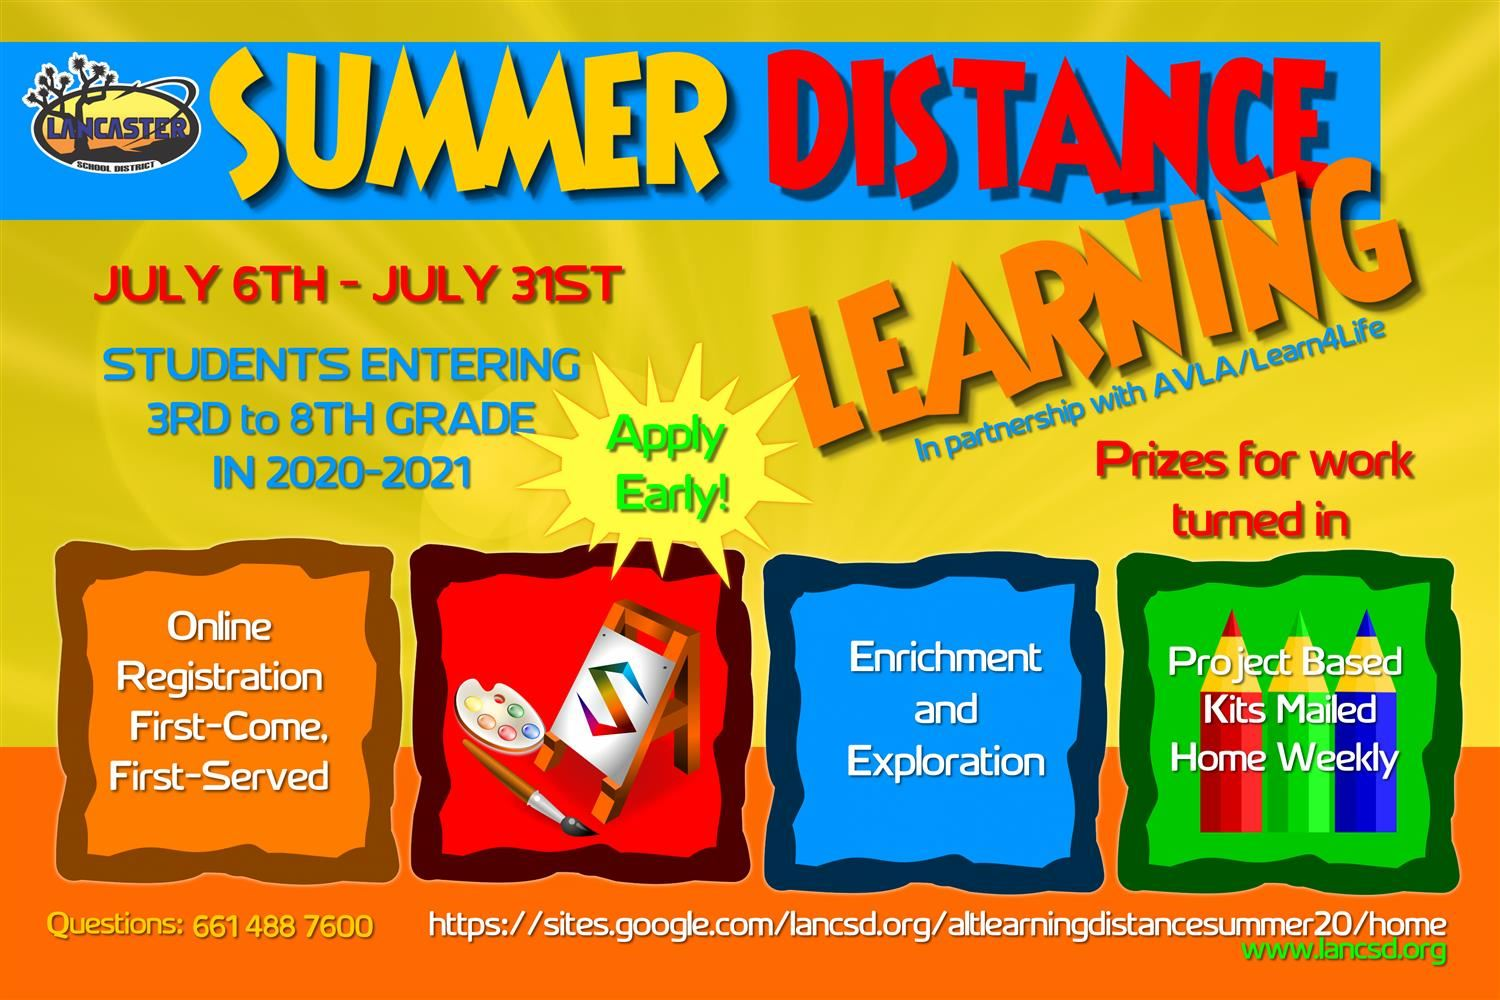 Summer Distance Learning July 6 - July 31